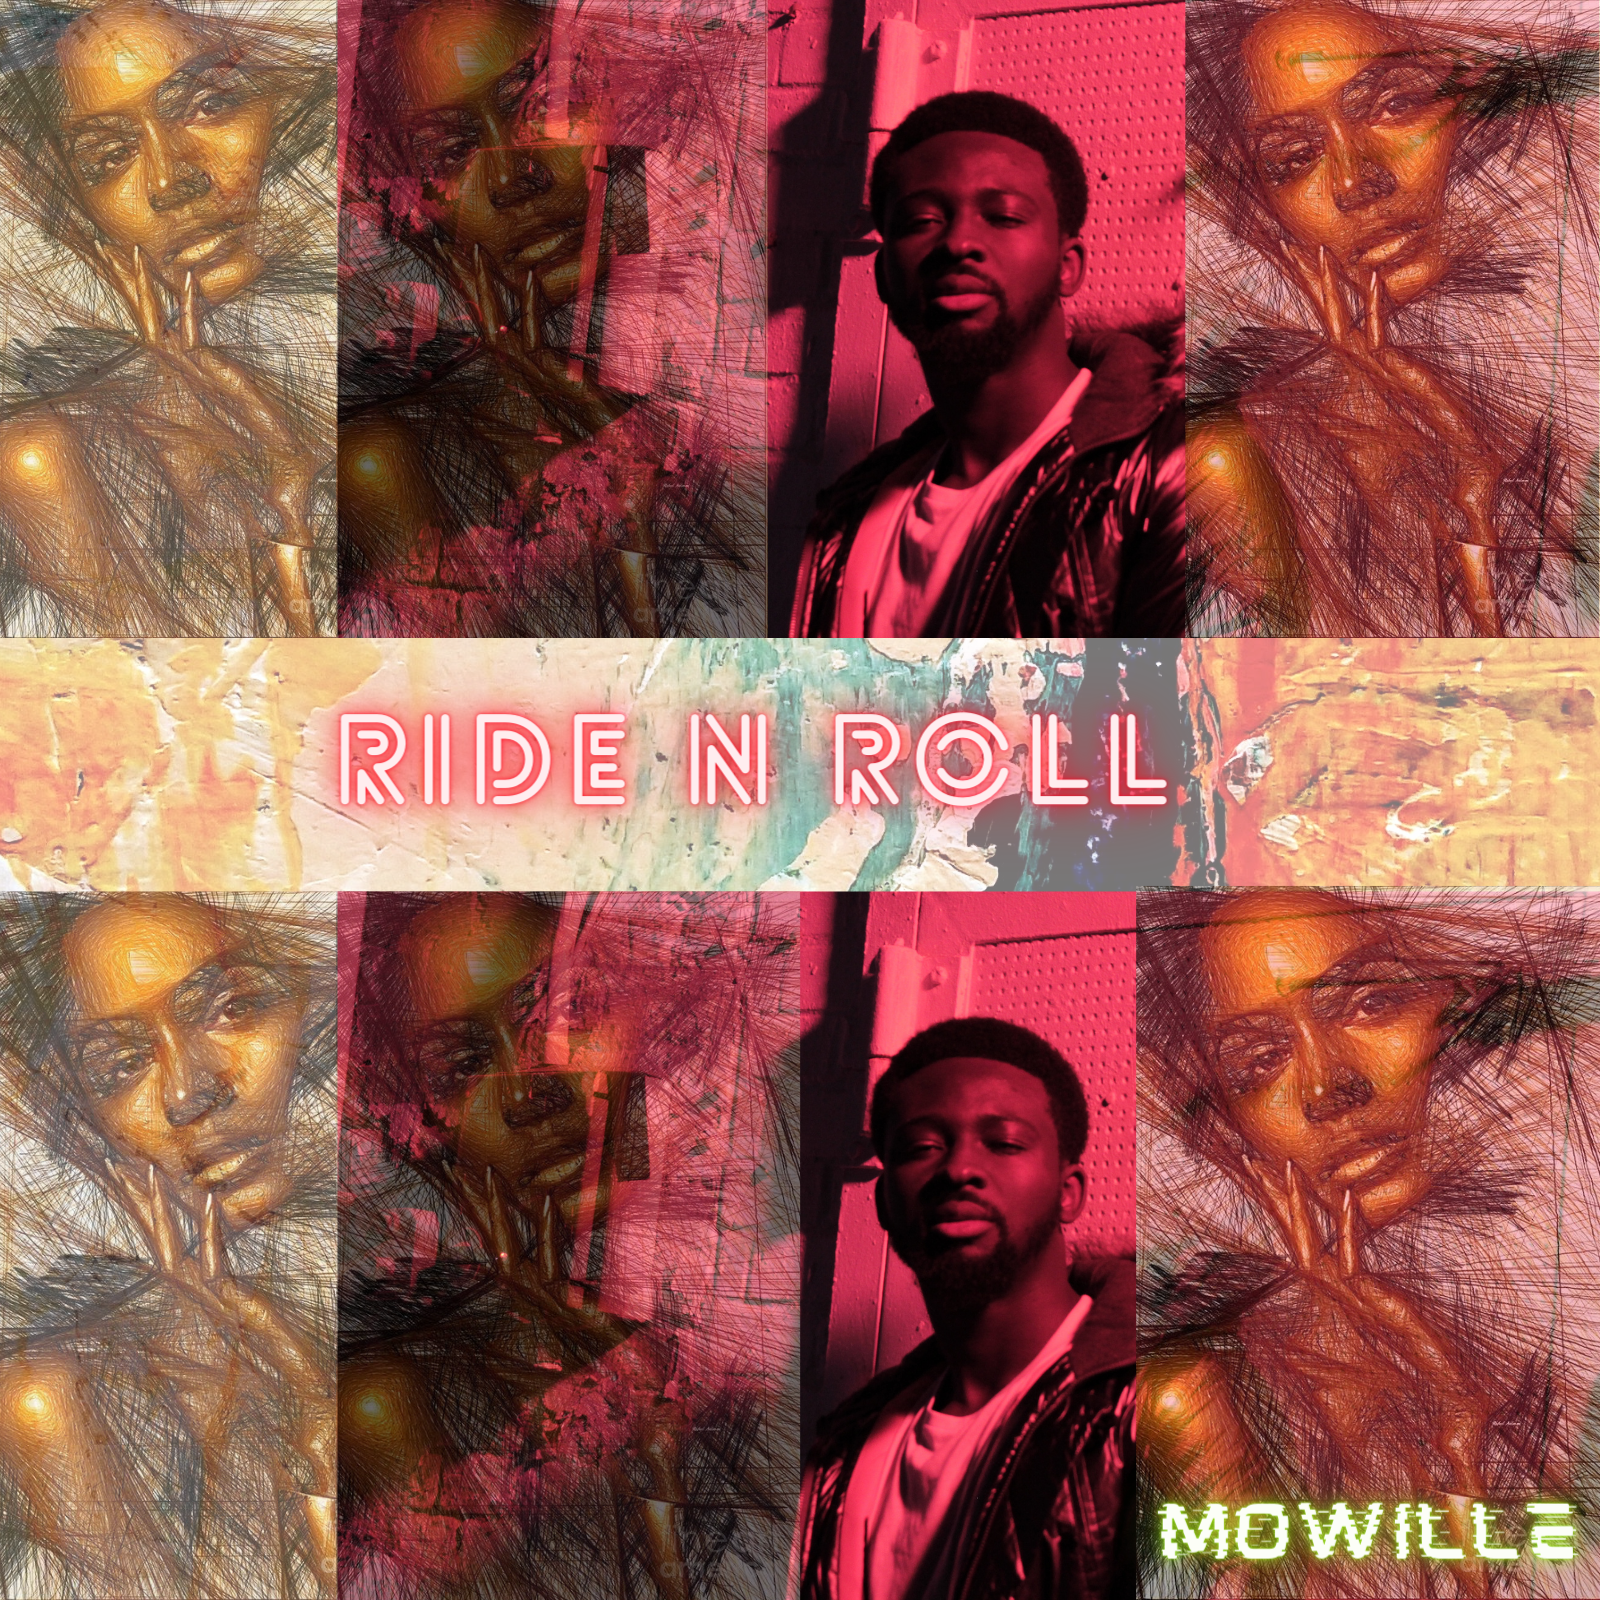 Mowille Releases A New Single Ride N Roll